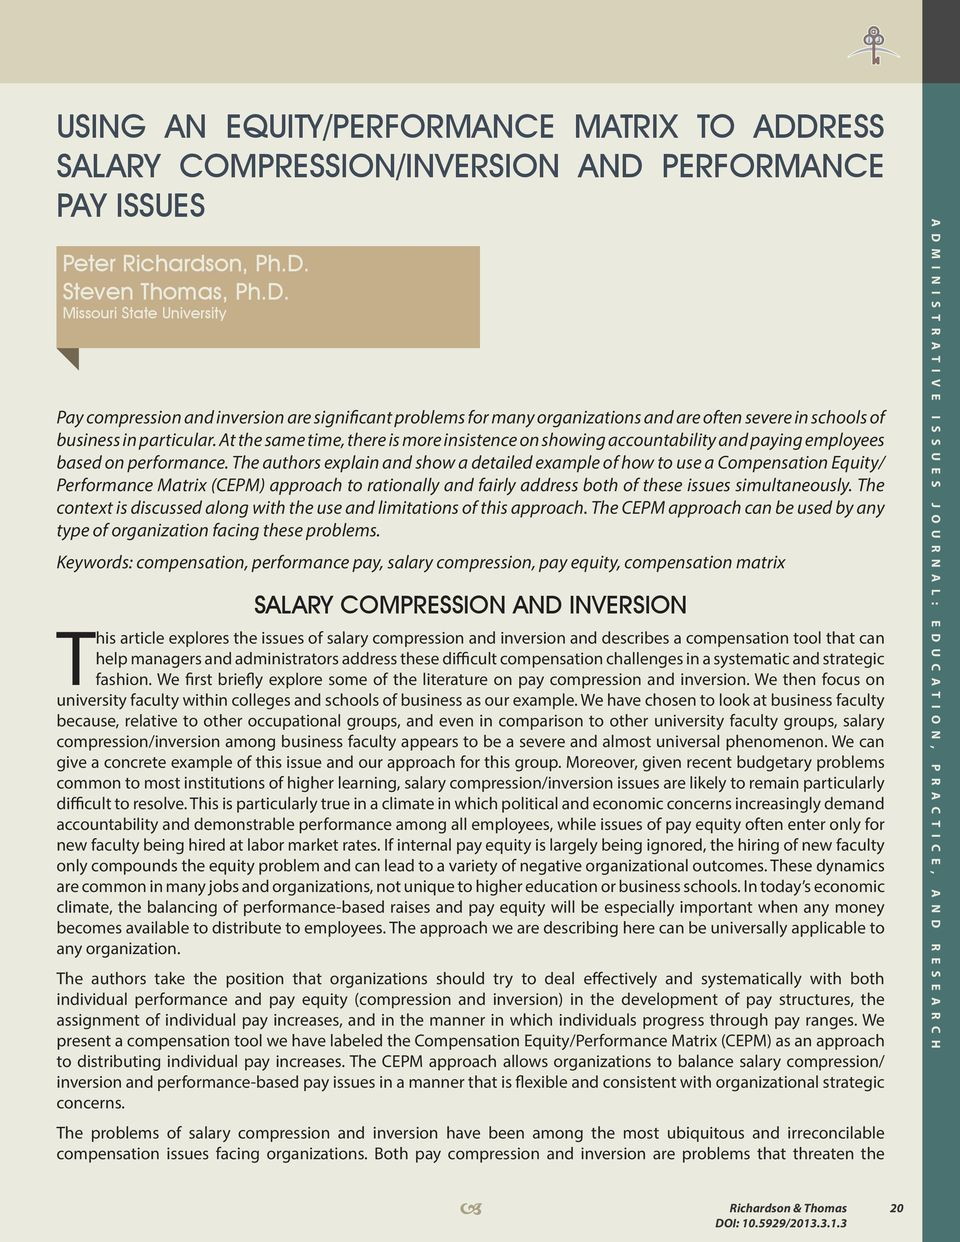 remuneration issues of wage compression and The problems of salary compression and, in some instances, salary inversion, have been among the most persistent and difficult compensation issues facing colleges and schools of business for decades.